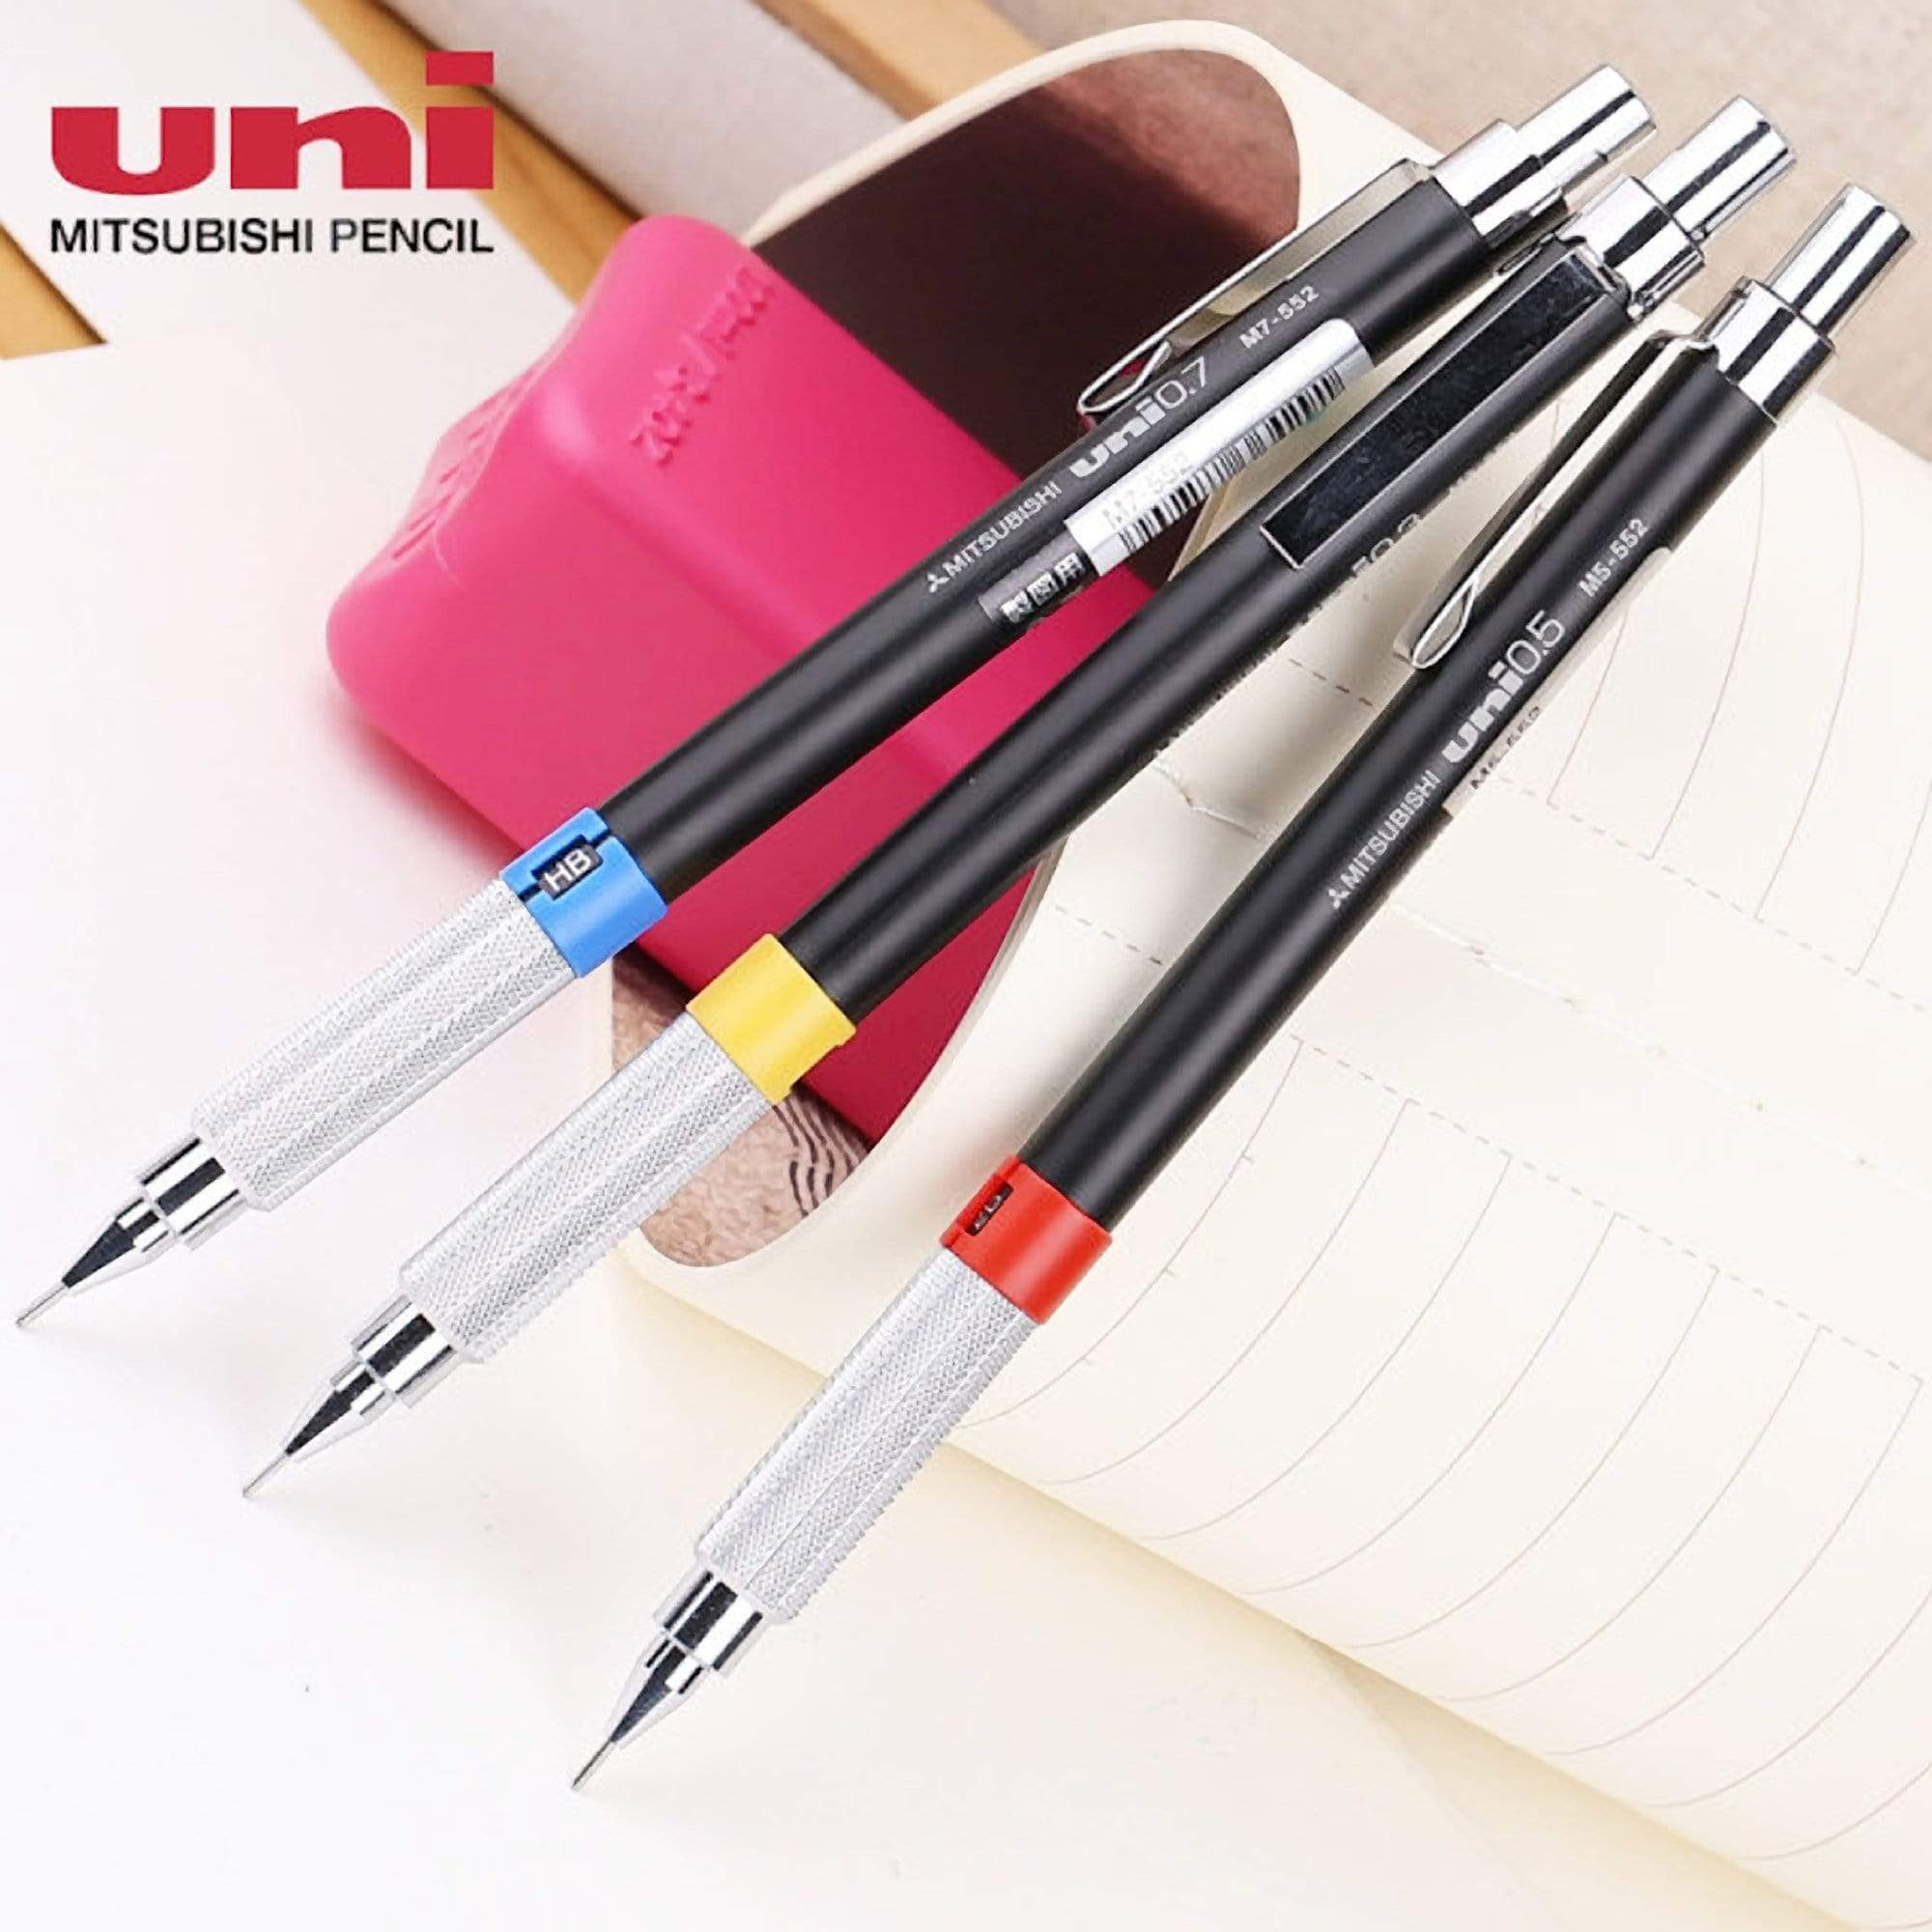 Mitsubishi Uni 552 Series Pencil for Drafting Yellow Band | 0.3 mm - The Stationery Life!